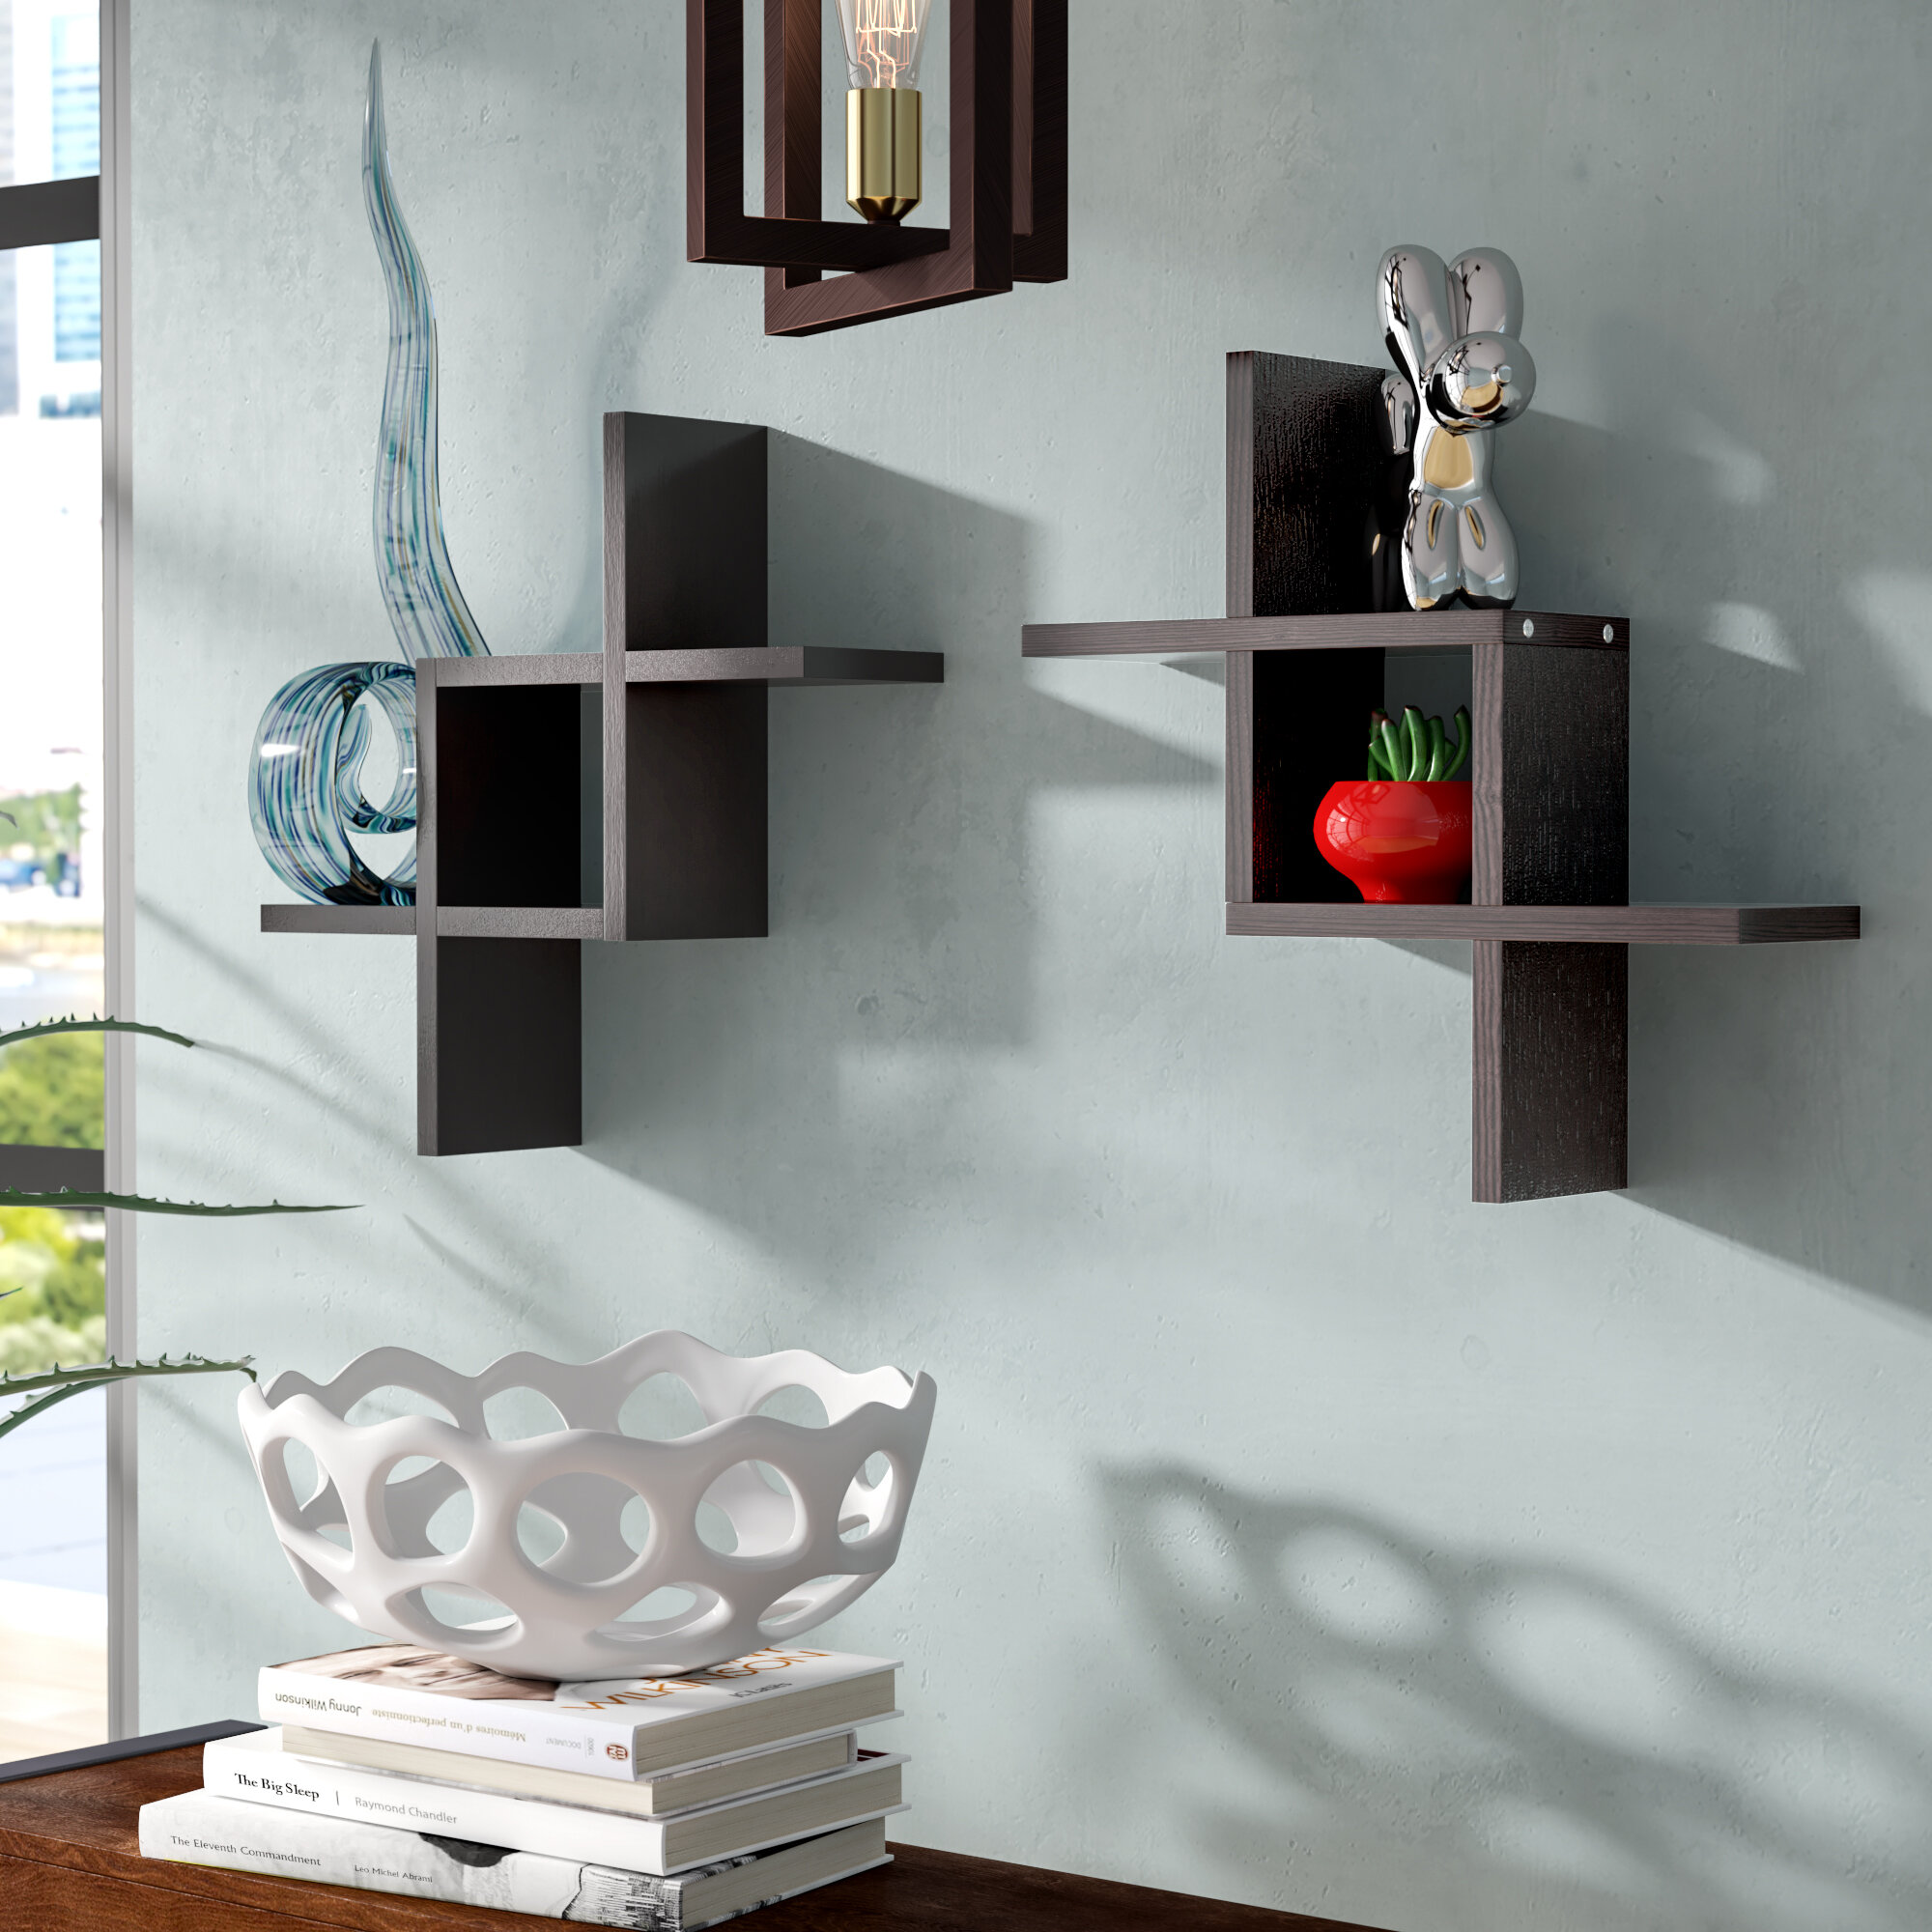 constrain edge redesign live view picture qlt anthropologie slide shelf fit shop hei bar zoom